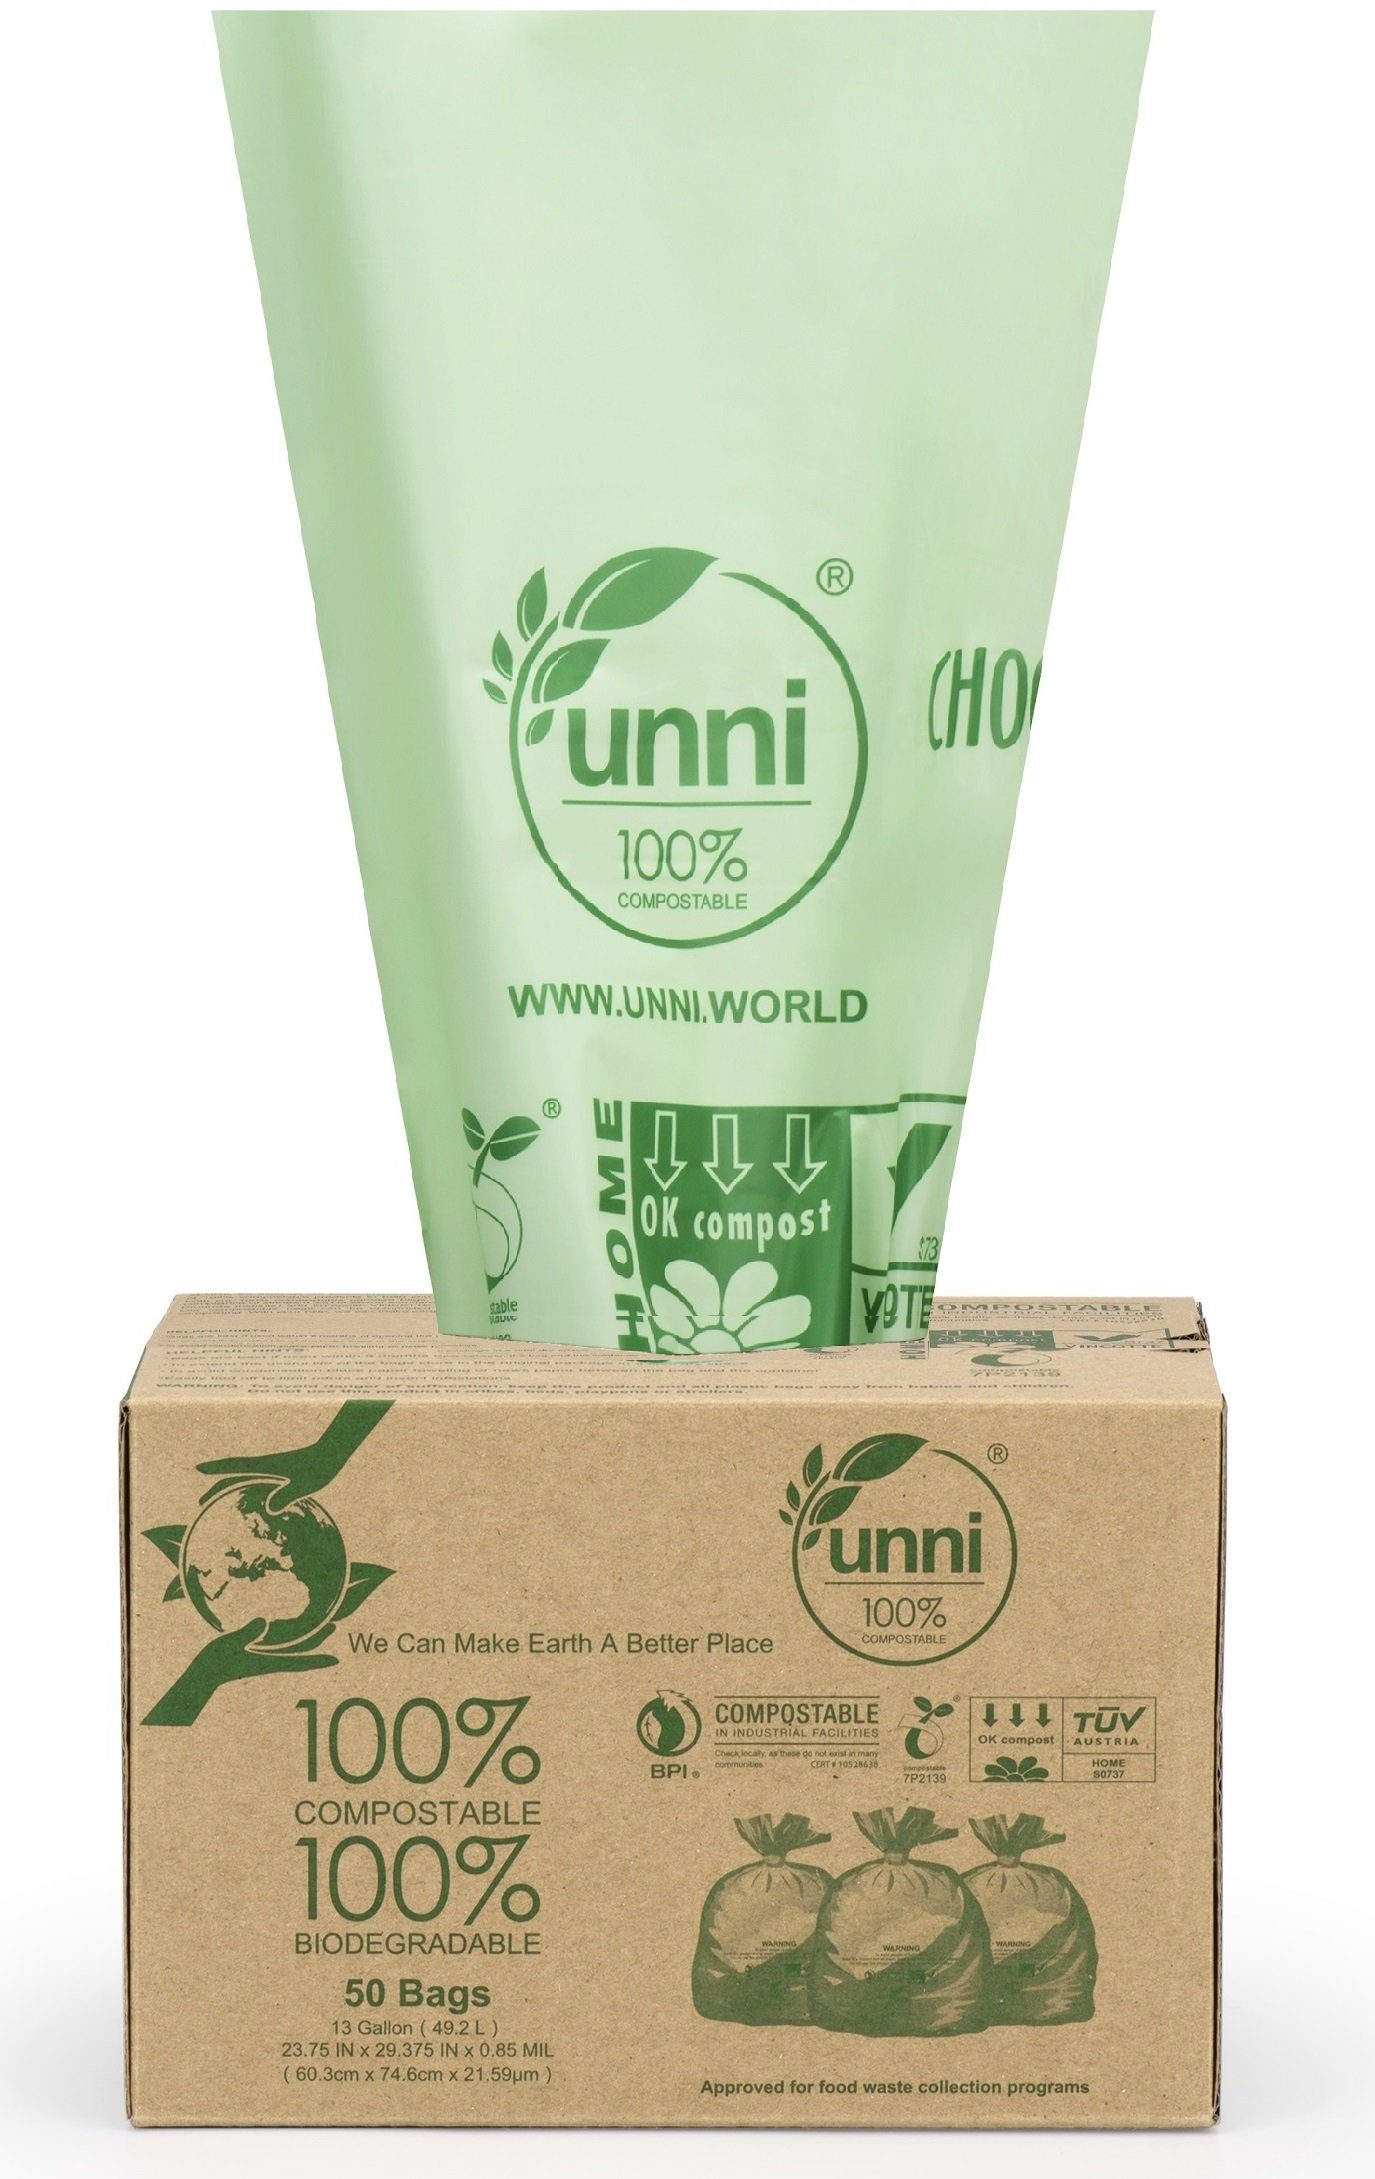 UNNI ASTM D6400 100% Compostable Bags, 13 Gallon, 100 Count, Heavy Duty 0.85 Mils, Tall Kitchen Trash Bags,Food Scrap Yard Waste Bags,US BPI & European VINCOTTE OK Compost Home Certified|San Francisco